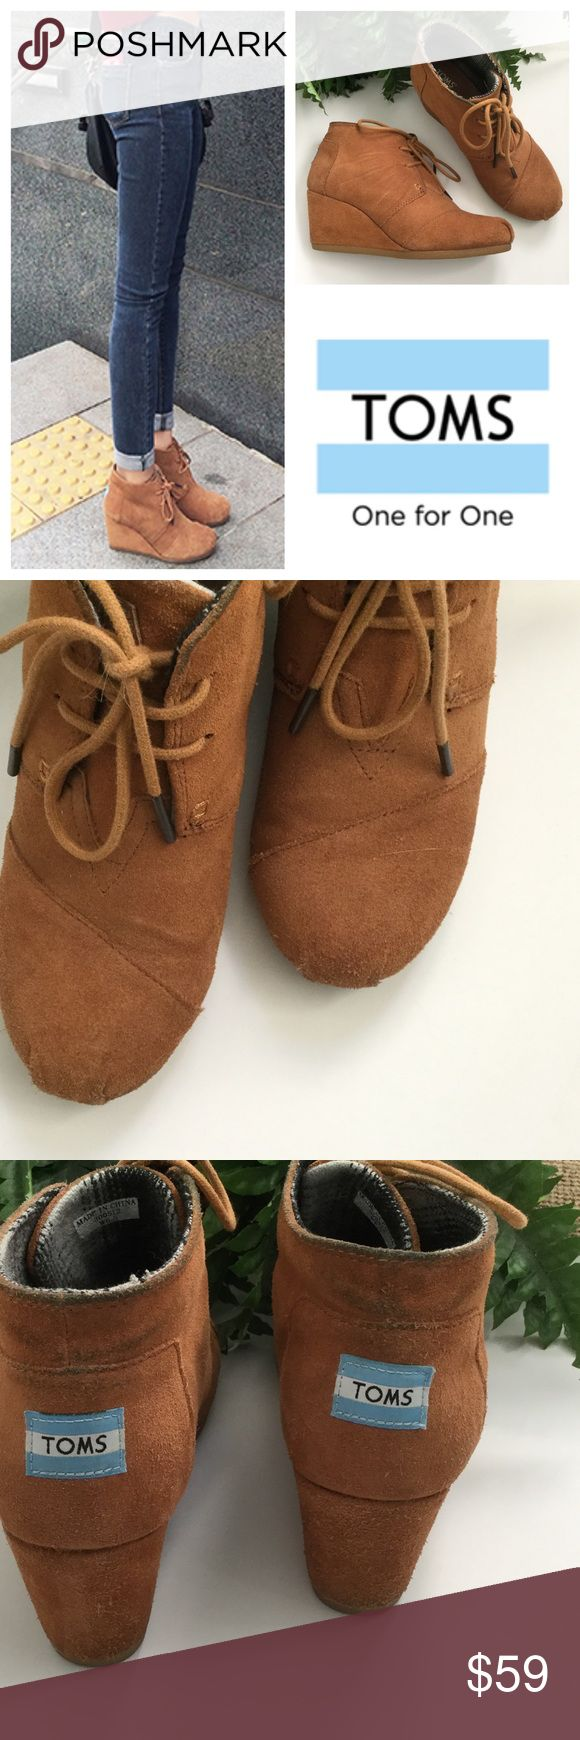 TOMS Chestnut Desert Wedge Bootie Good used condition... few signs of wear most notable denim stains on back as shown in 3rd pic. Look really, really cute with jeans and are very comfortable. Ask questions before purchasing. TOMS Shoes Ankle Boots & Booties